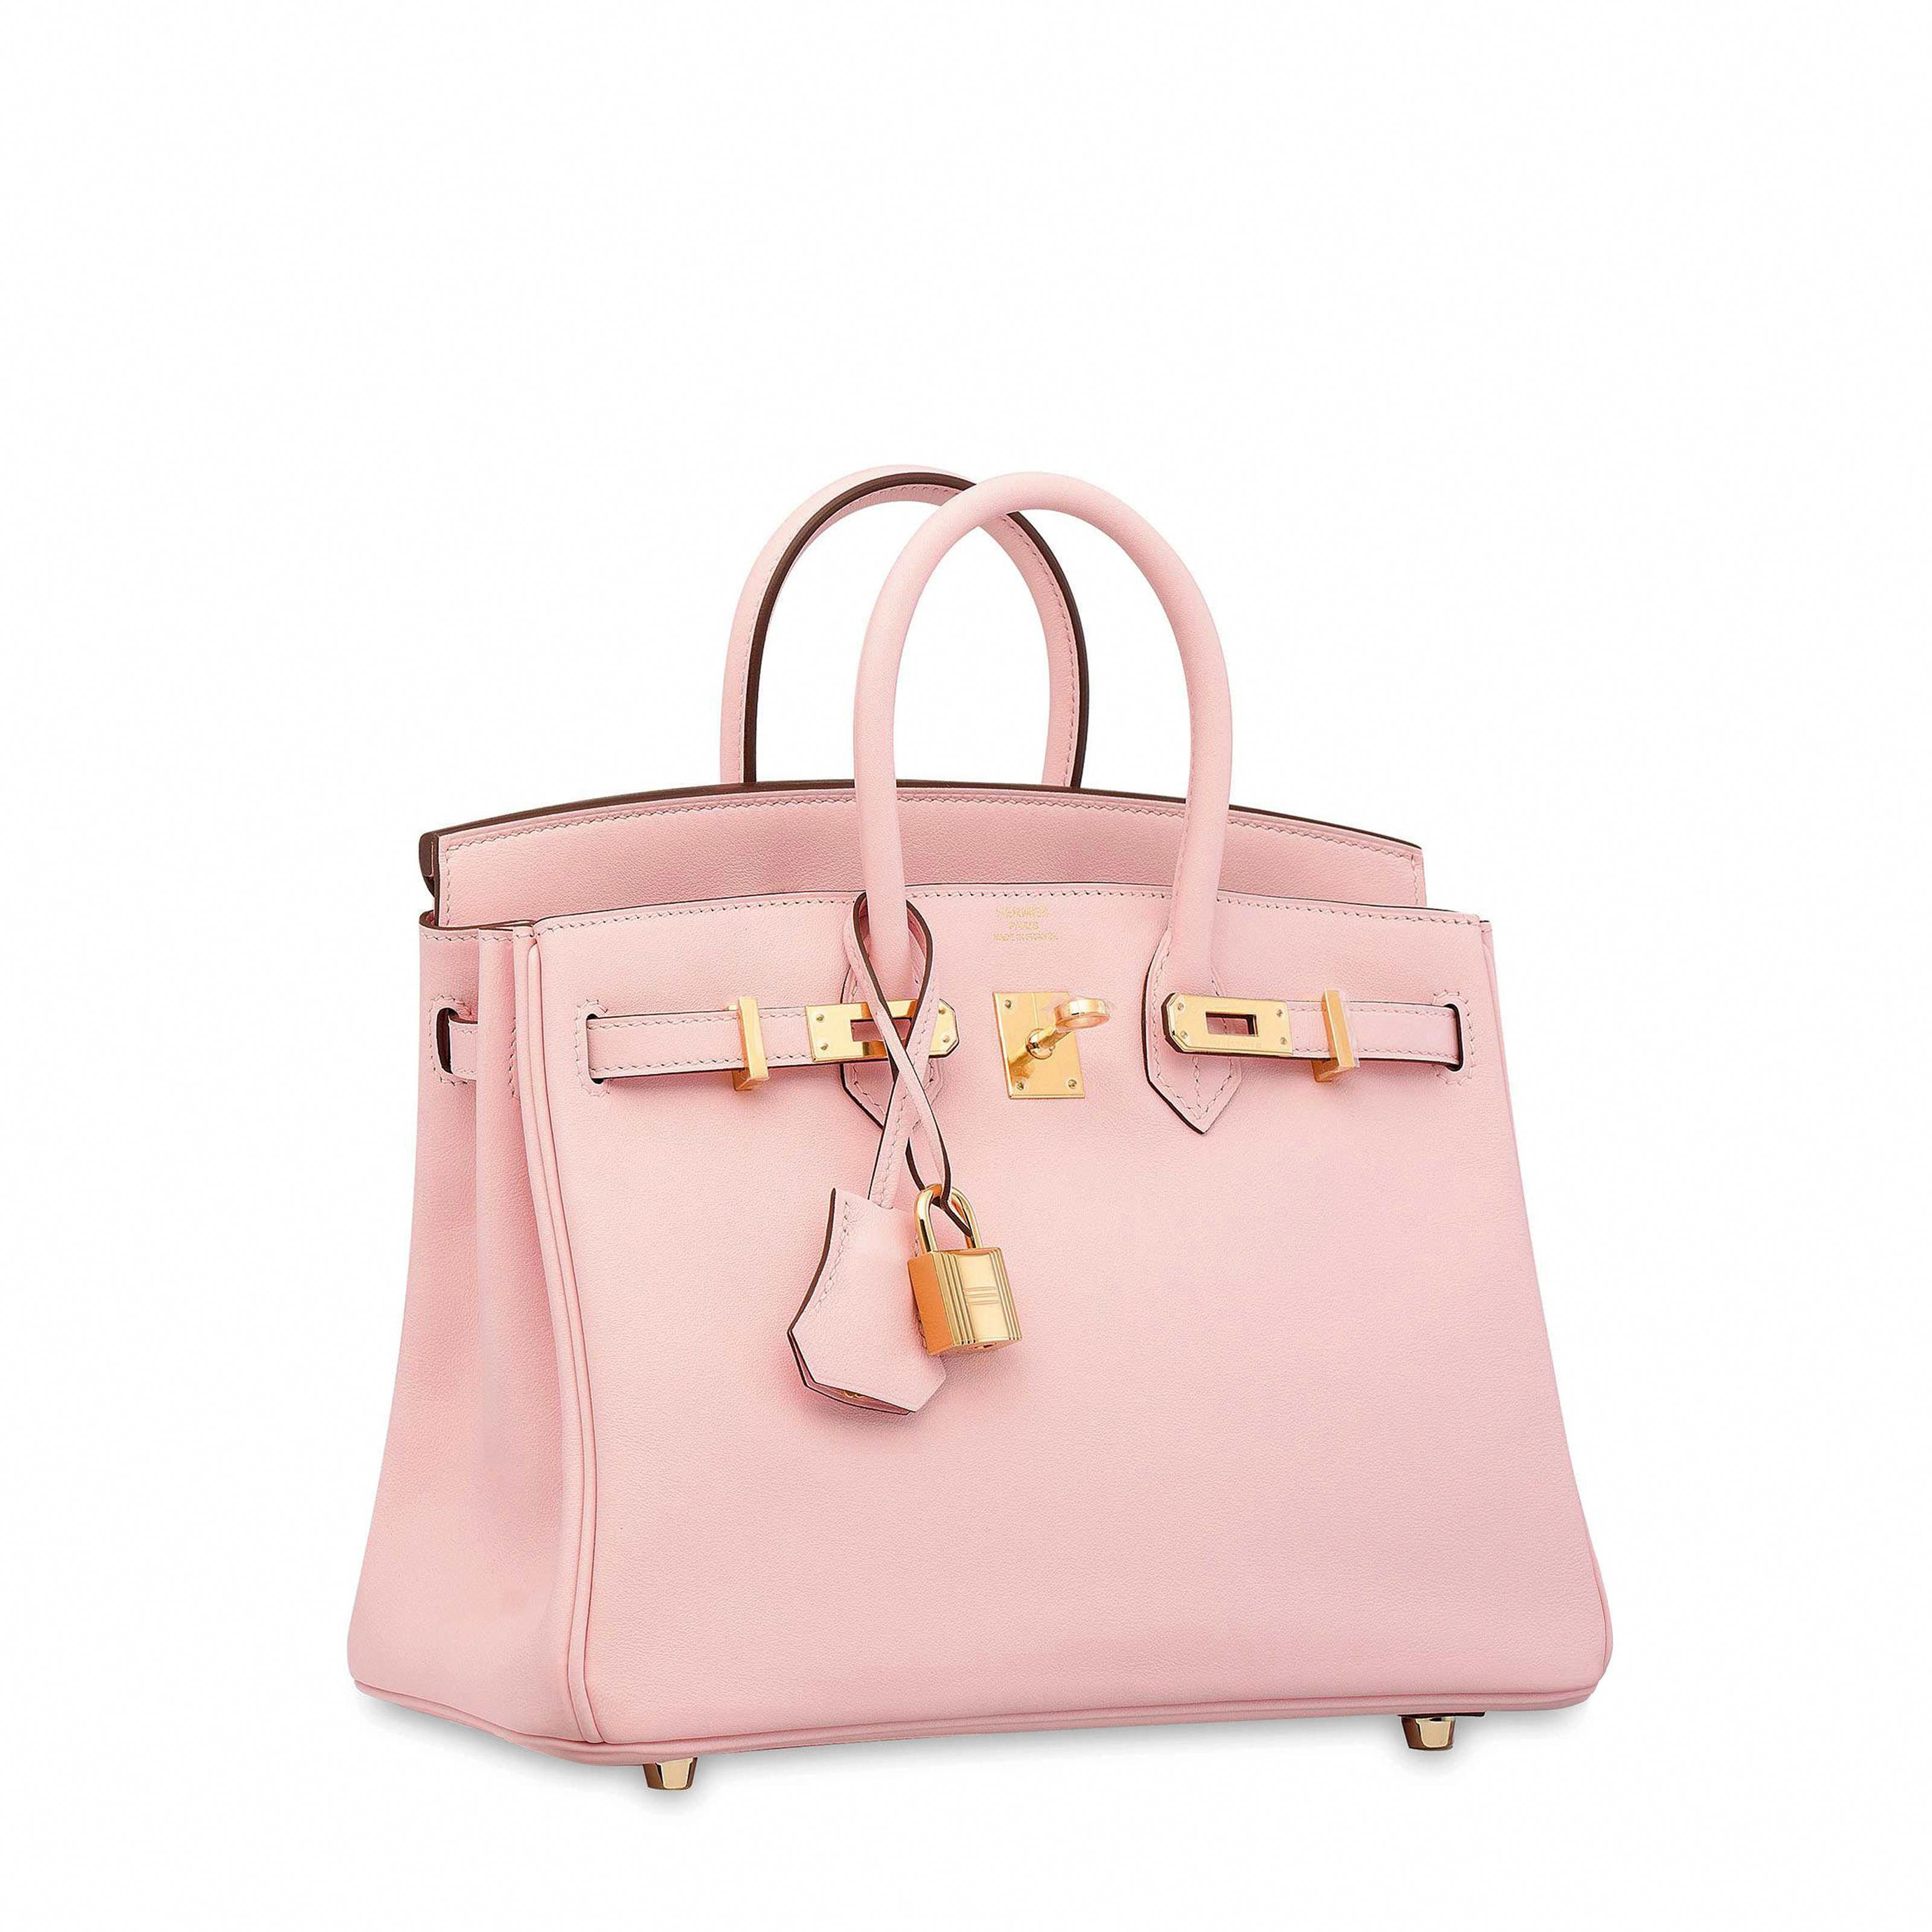 0b1784947260 CONDITION REPORT GRADE  A ROSE SAKURA SWIFT LEATHER BIRKIN 25 WITH GOLD  HARDWARE HERMÈS